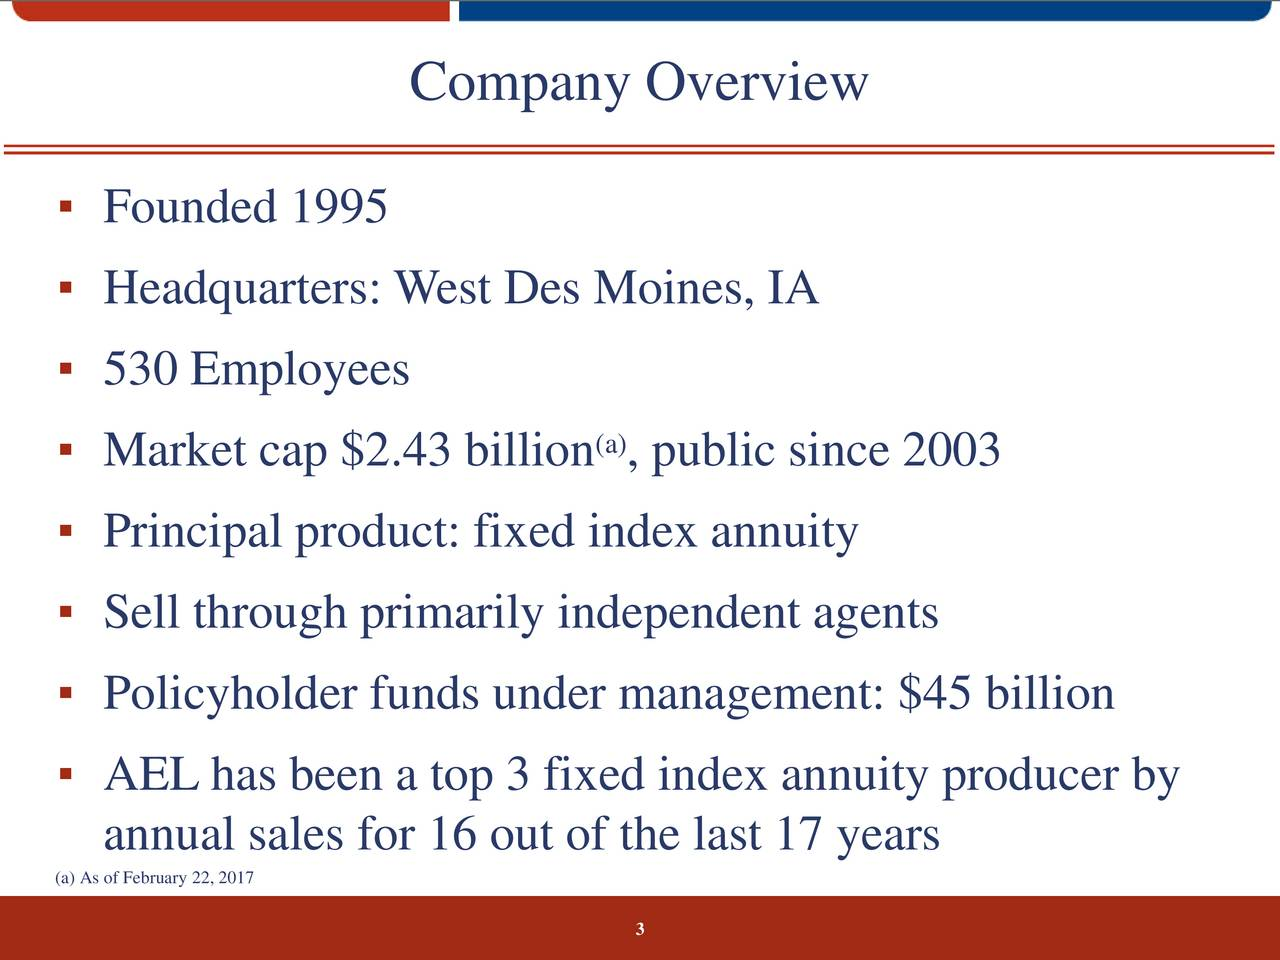 Founded 1995 Headquarters: West Des Moines, IA 530 Employees (a) Market cap $2.43 billion , public since 2003 Principal product: fixed index annuity Sell through primarily independent agents Policyholder funds under management: $45 billion AEL has been a top 3 fixed index annuity producer by annual sales for 16 out of the last 17 years (a) As of February 22, 2017 3